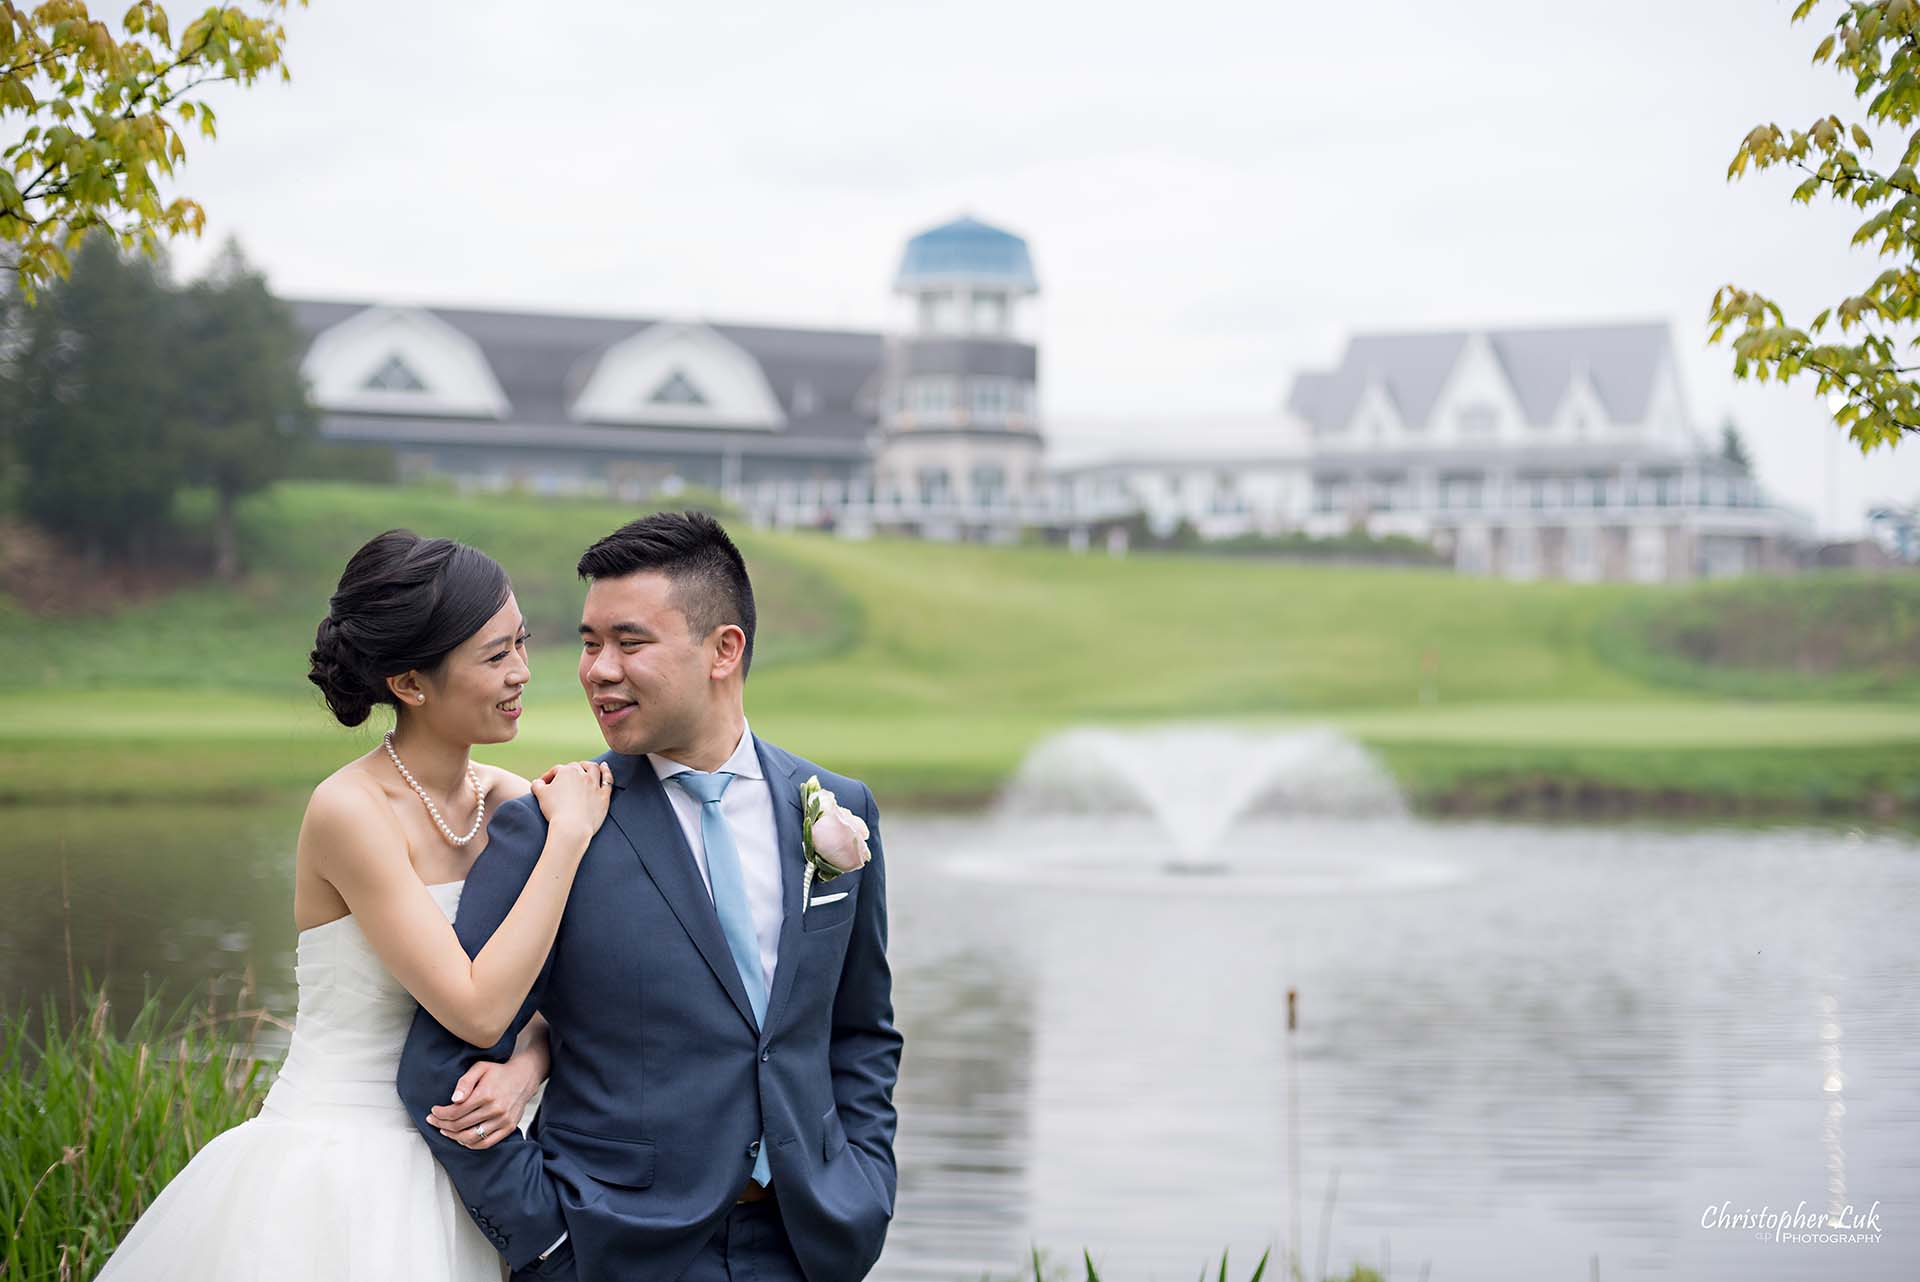 Christopher Luk Toronto Wedding Photographer Angus Glen Golf Club Markham Great Hall Dinner Reception Event Venue Green Field Sunset Bride Groom Natural Candid Photojournalistic Hold Each Other Hug Together Green Pond Lake Clubhouse Landscape Water Fountain